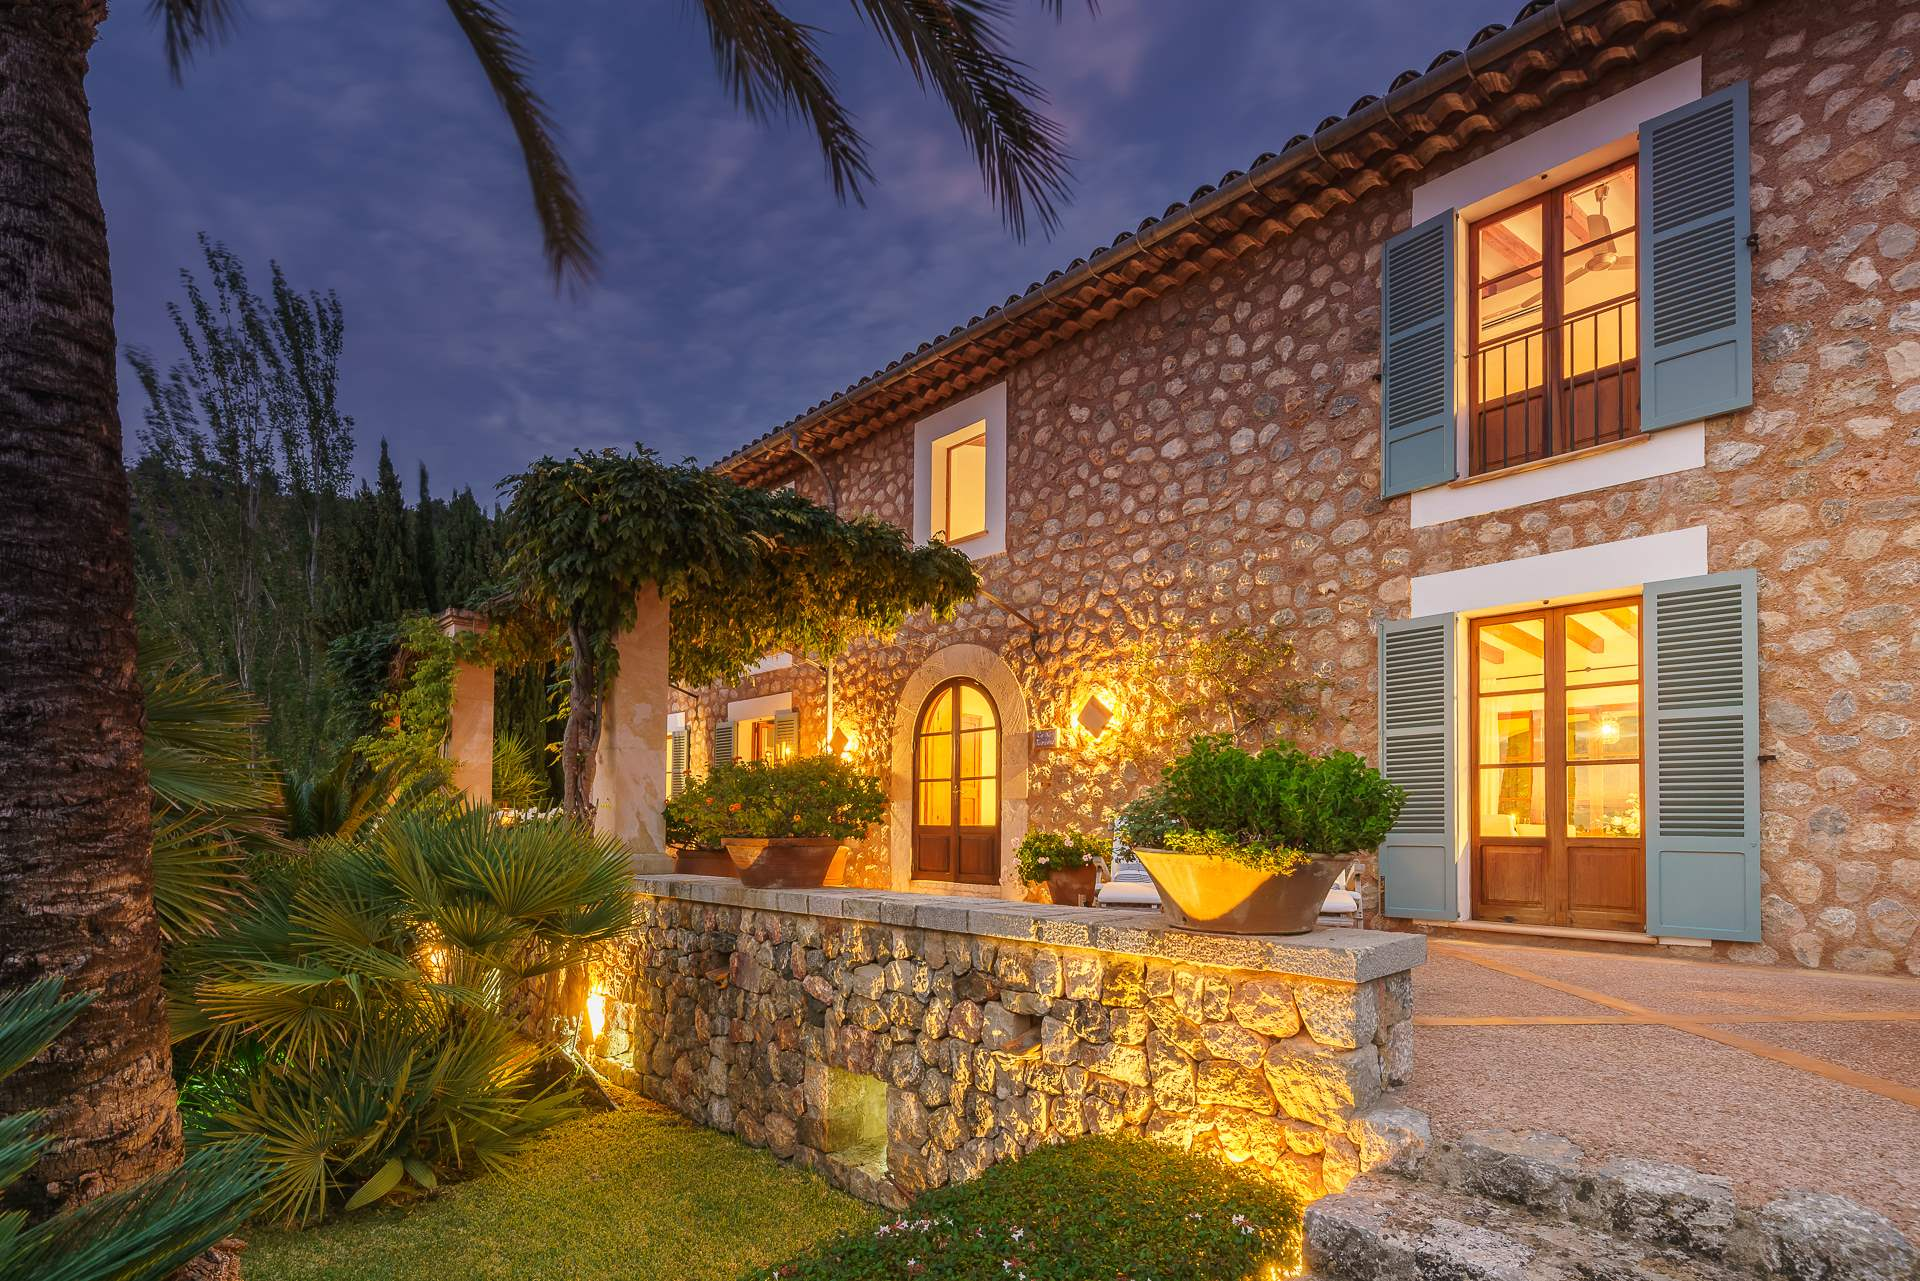 Sa Tanca, 3 Bedroom Rental, 3 bedroom villa in Soller & Deia, Majorca Photo #16